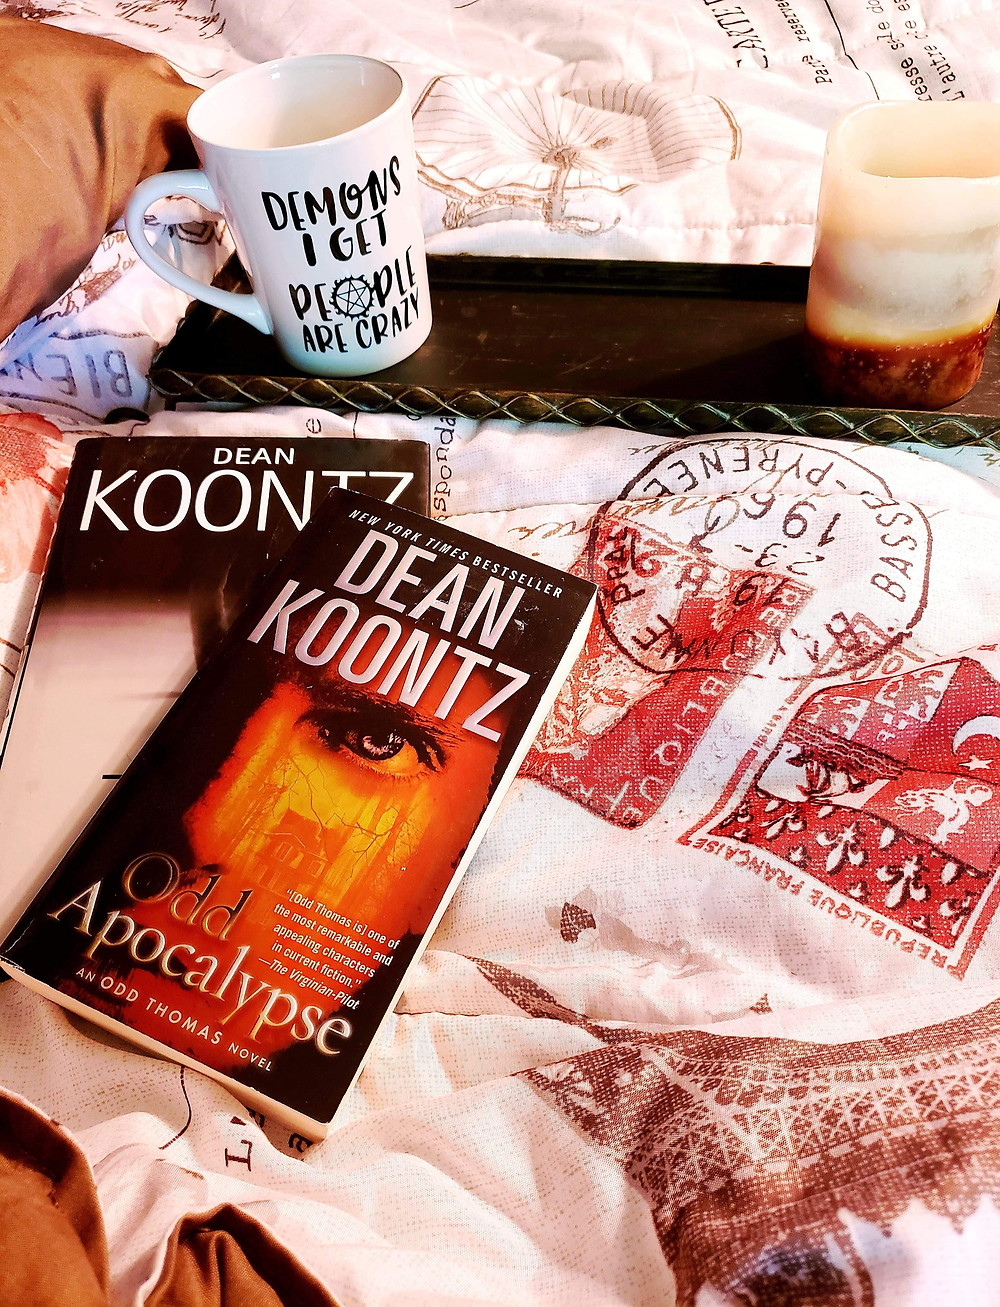 Horror Elements in Writing Coffee, Book, and Candle